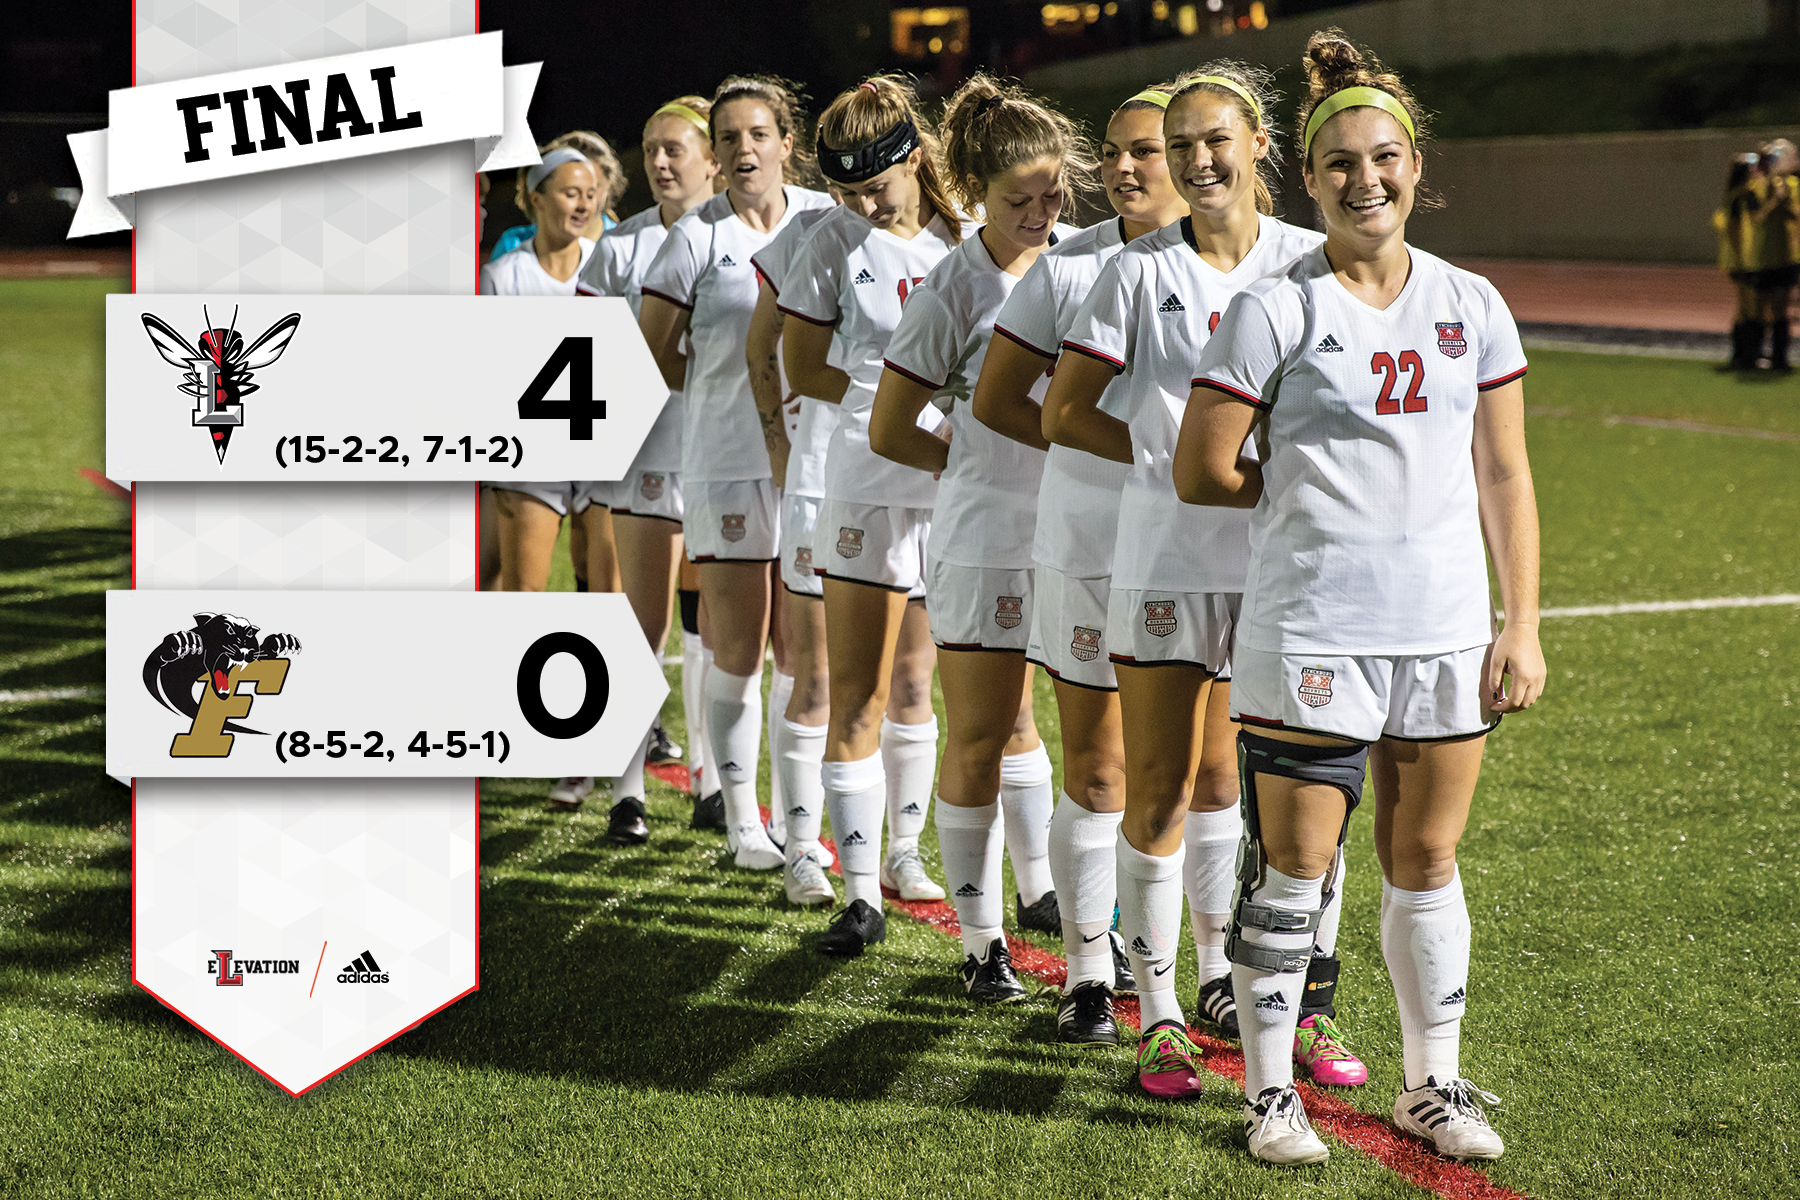 Lynchburg women's soccer lines up for the national anthem. Graphic showing 4-0 final score.